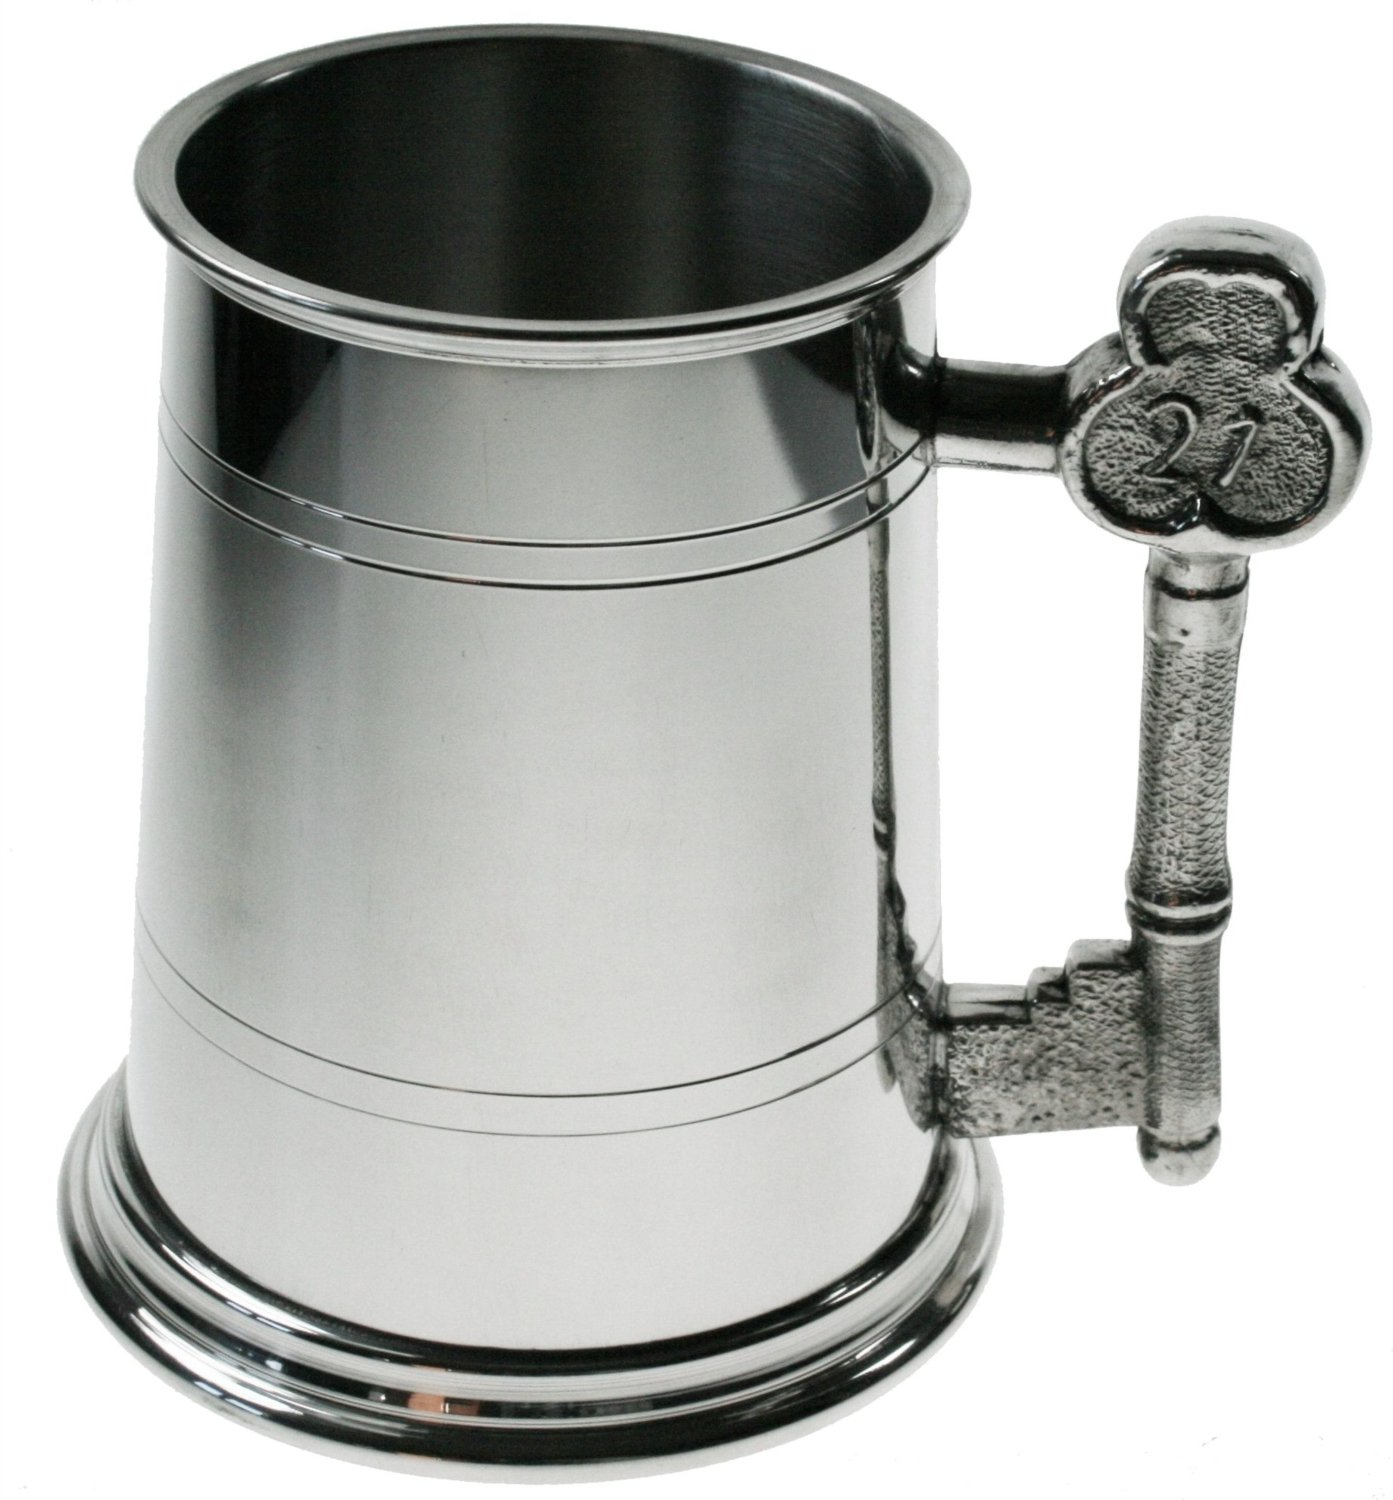 Personalised 1 Pint Pewter Tankard with 21 Key Handle, Engraved Birthday Gift - Enter Your Own Custom Text County Engraving